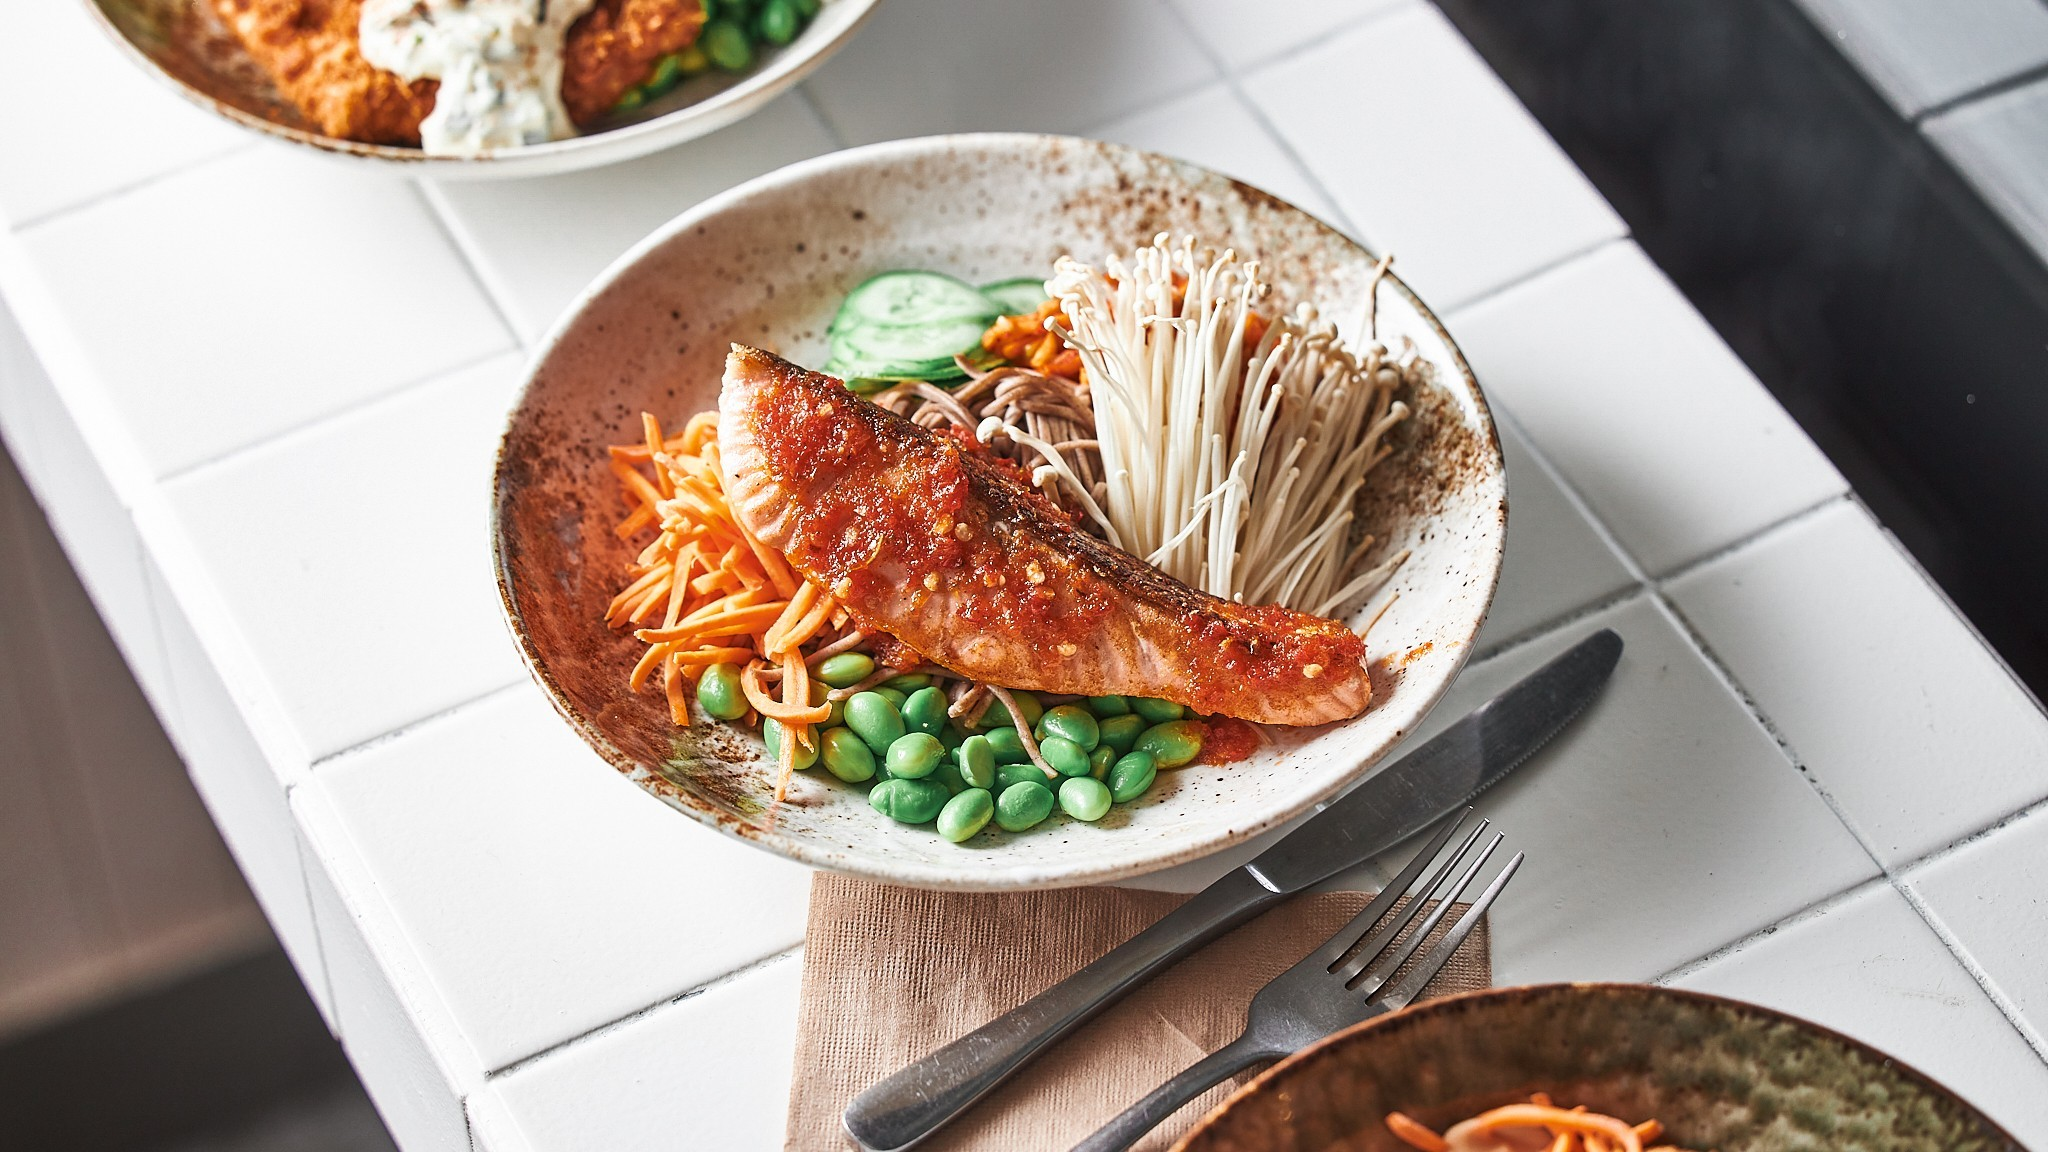 Fish, edamame and carrot in a bowl